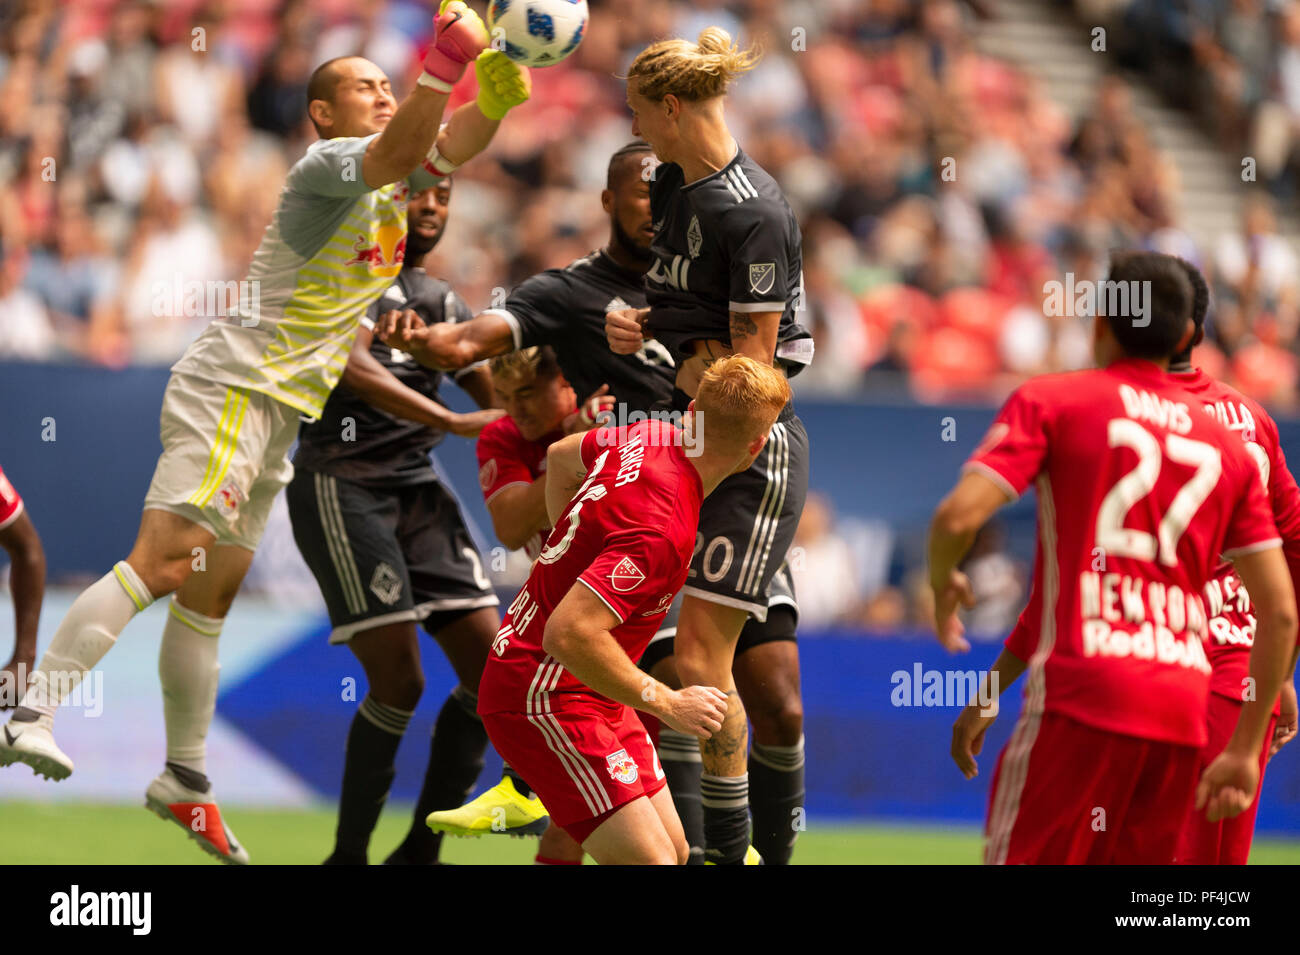 Vancouver, Canada. 18 August, 2018.  Goalkeeper Luis Robles (31) of New York Red Bulls, defending his goal. Vancouver Whitecaps vs New York Red Bulls, BC Place Stadium. © Gerry Rousseau/Alamy Live News - Stock Image